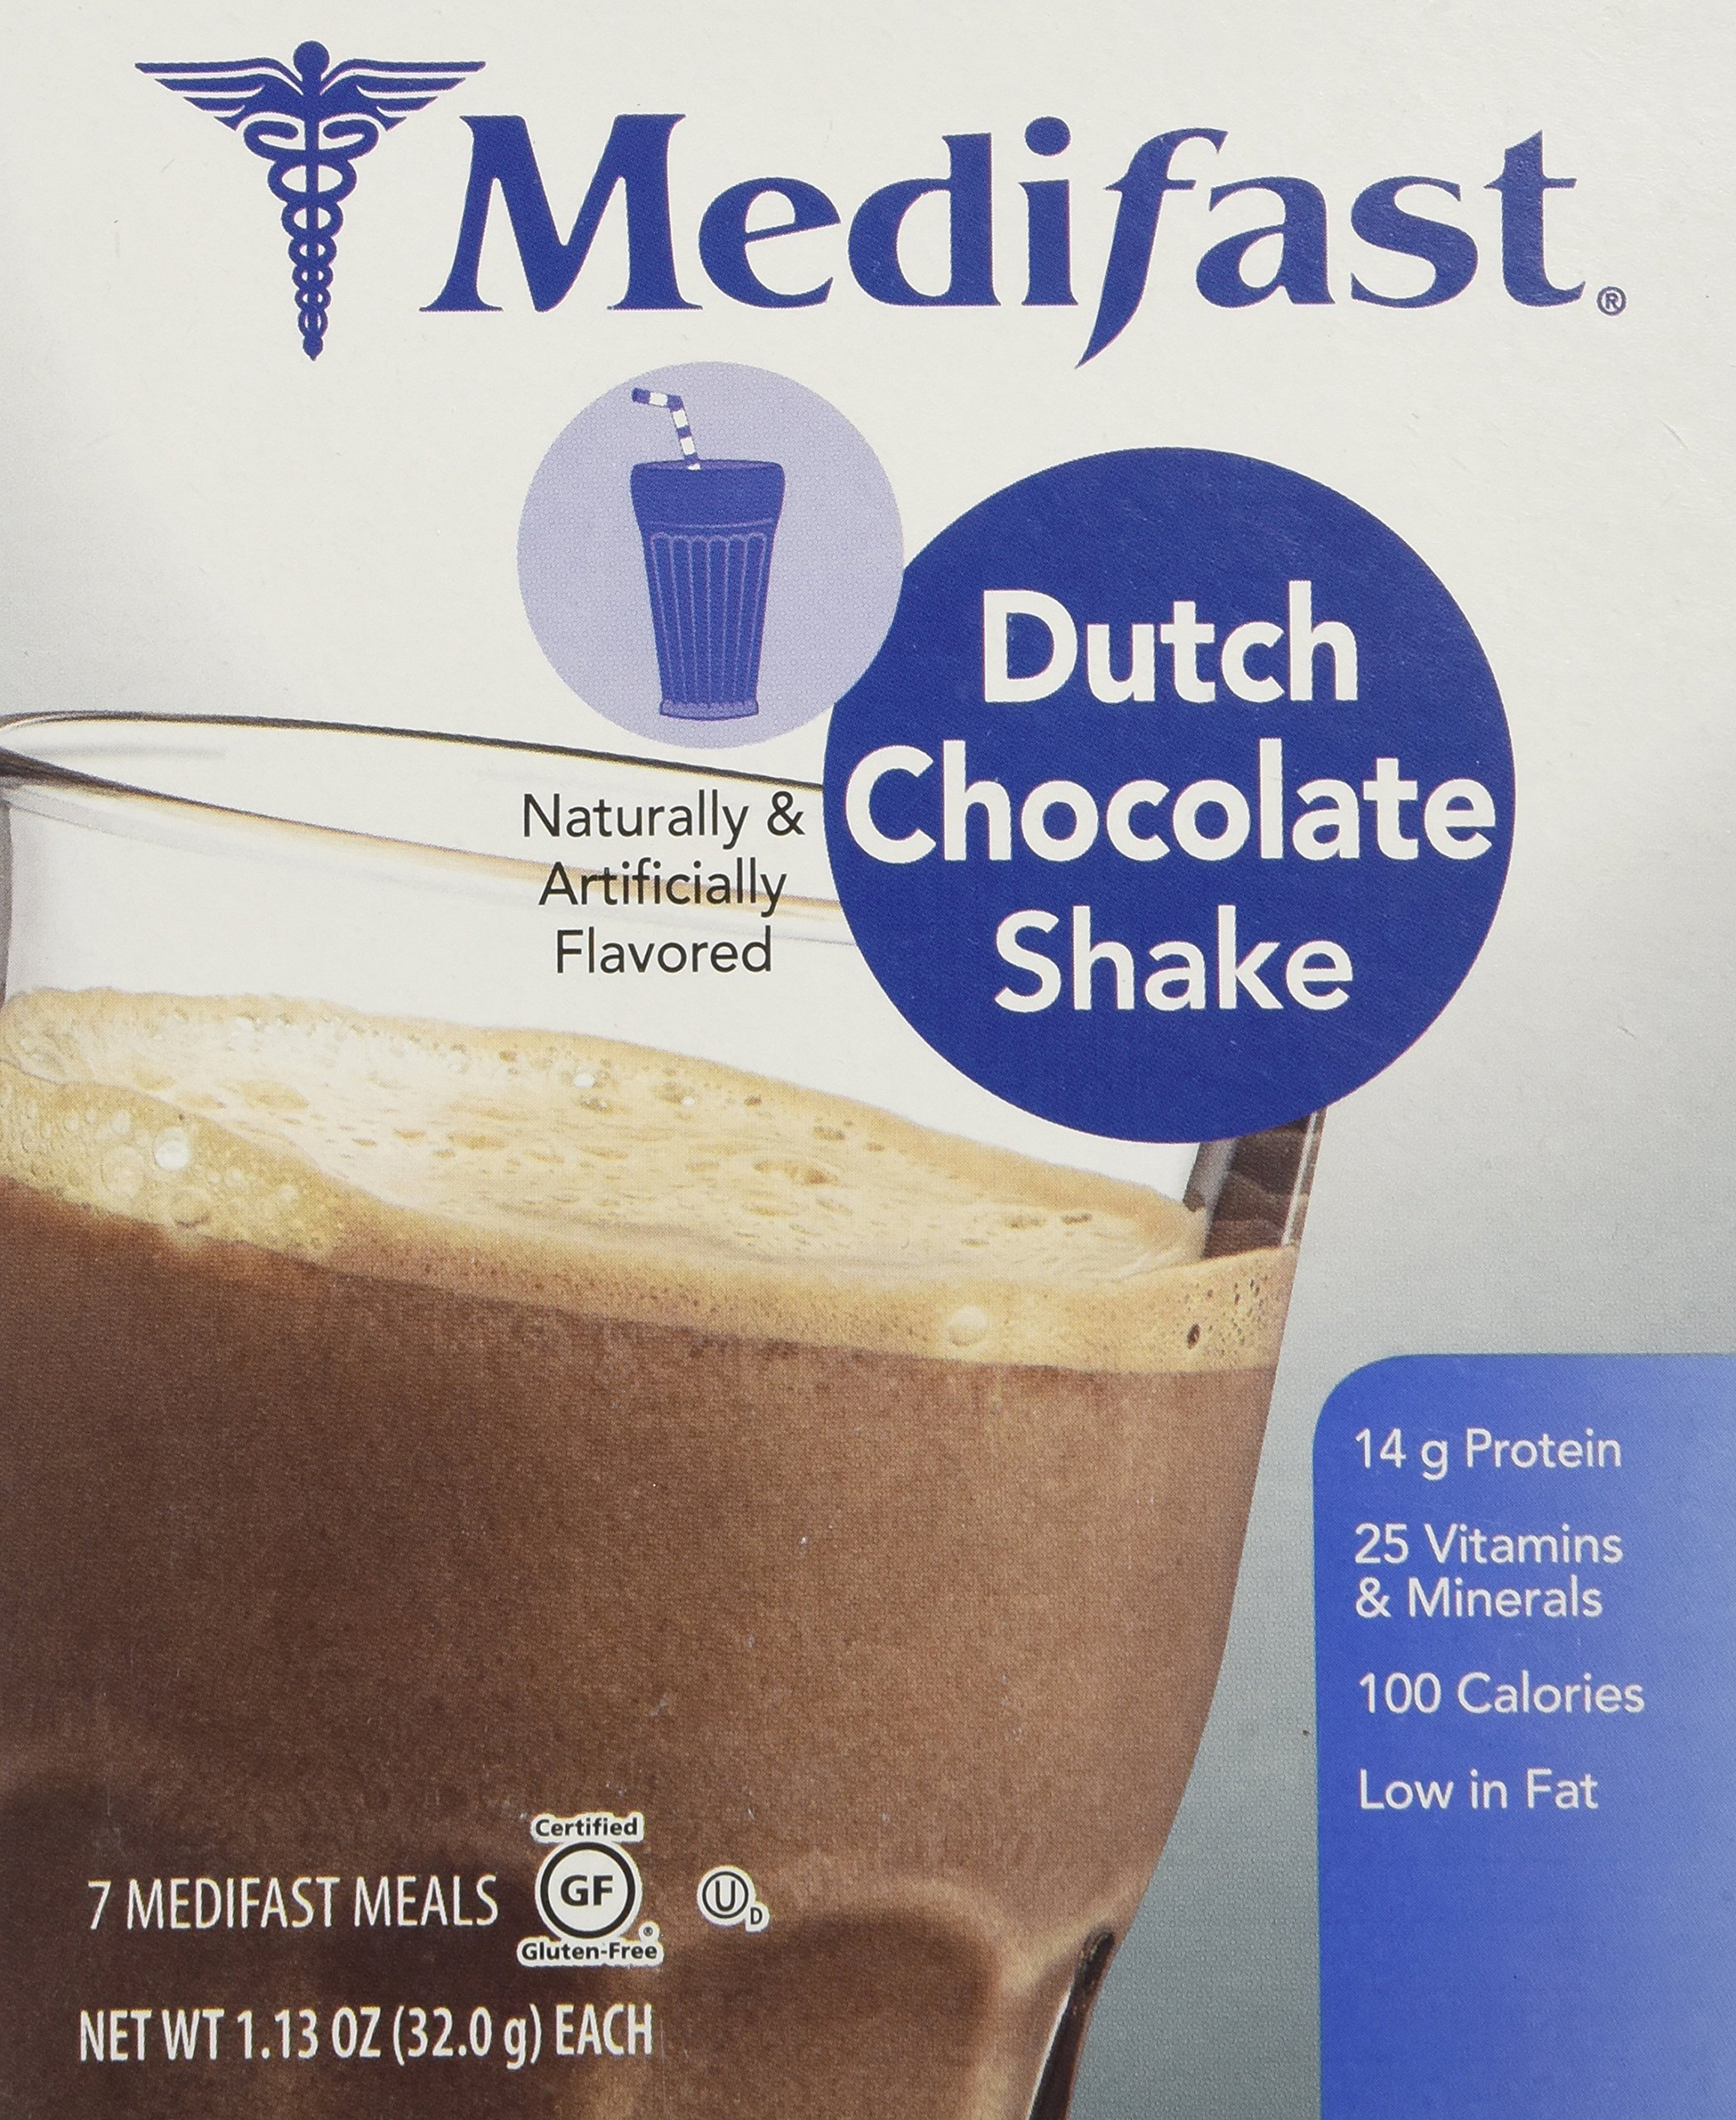 Medifast Dutch Chocolate Shake (1 Box = 7 Meals)